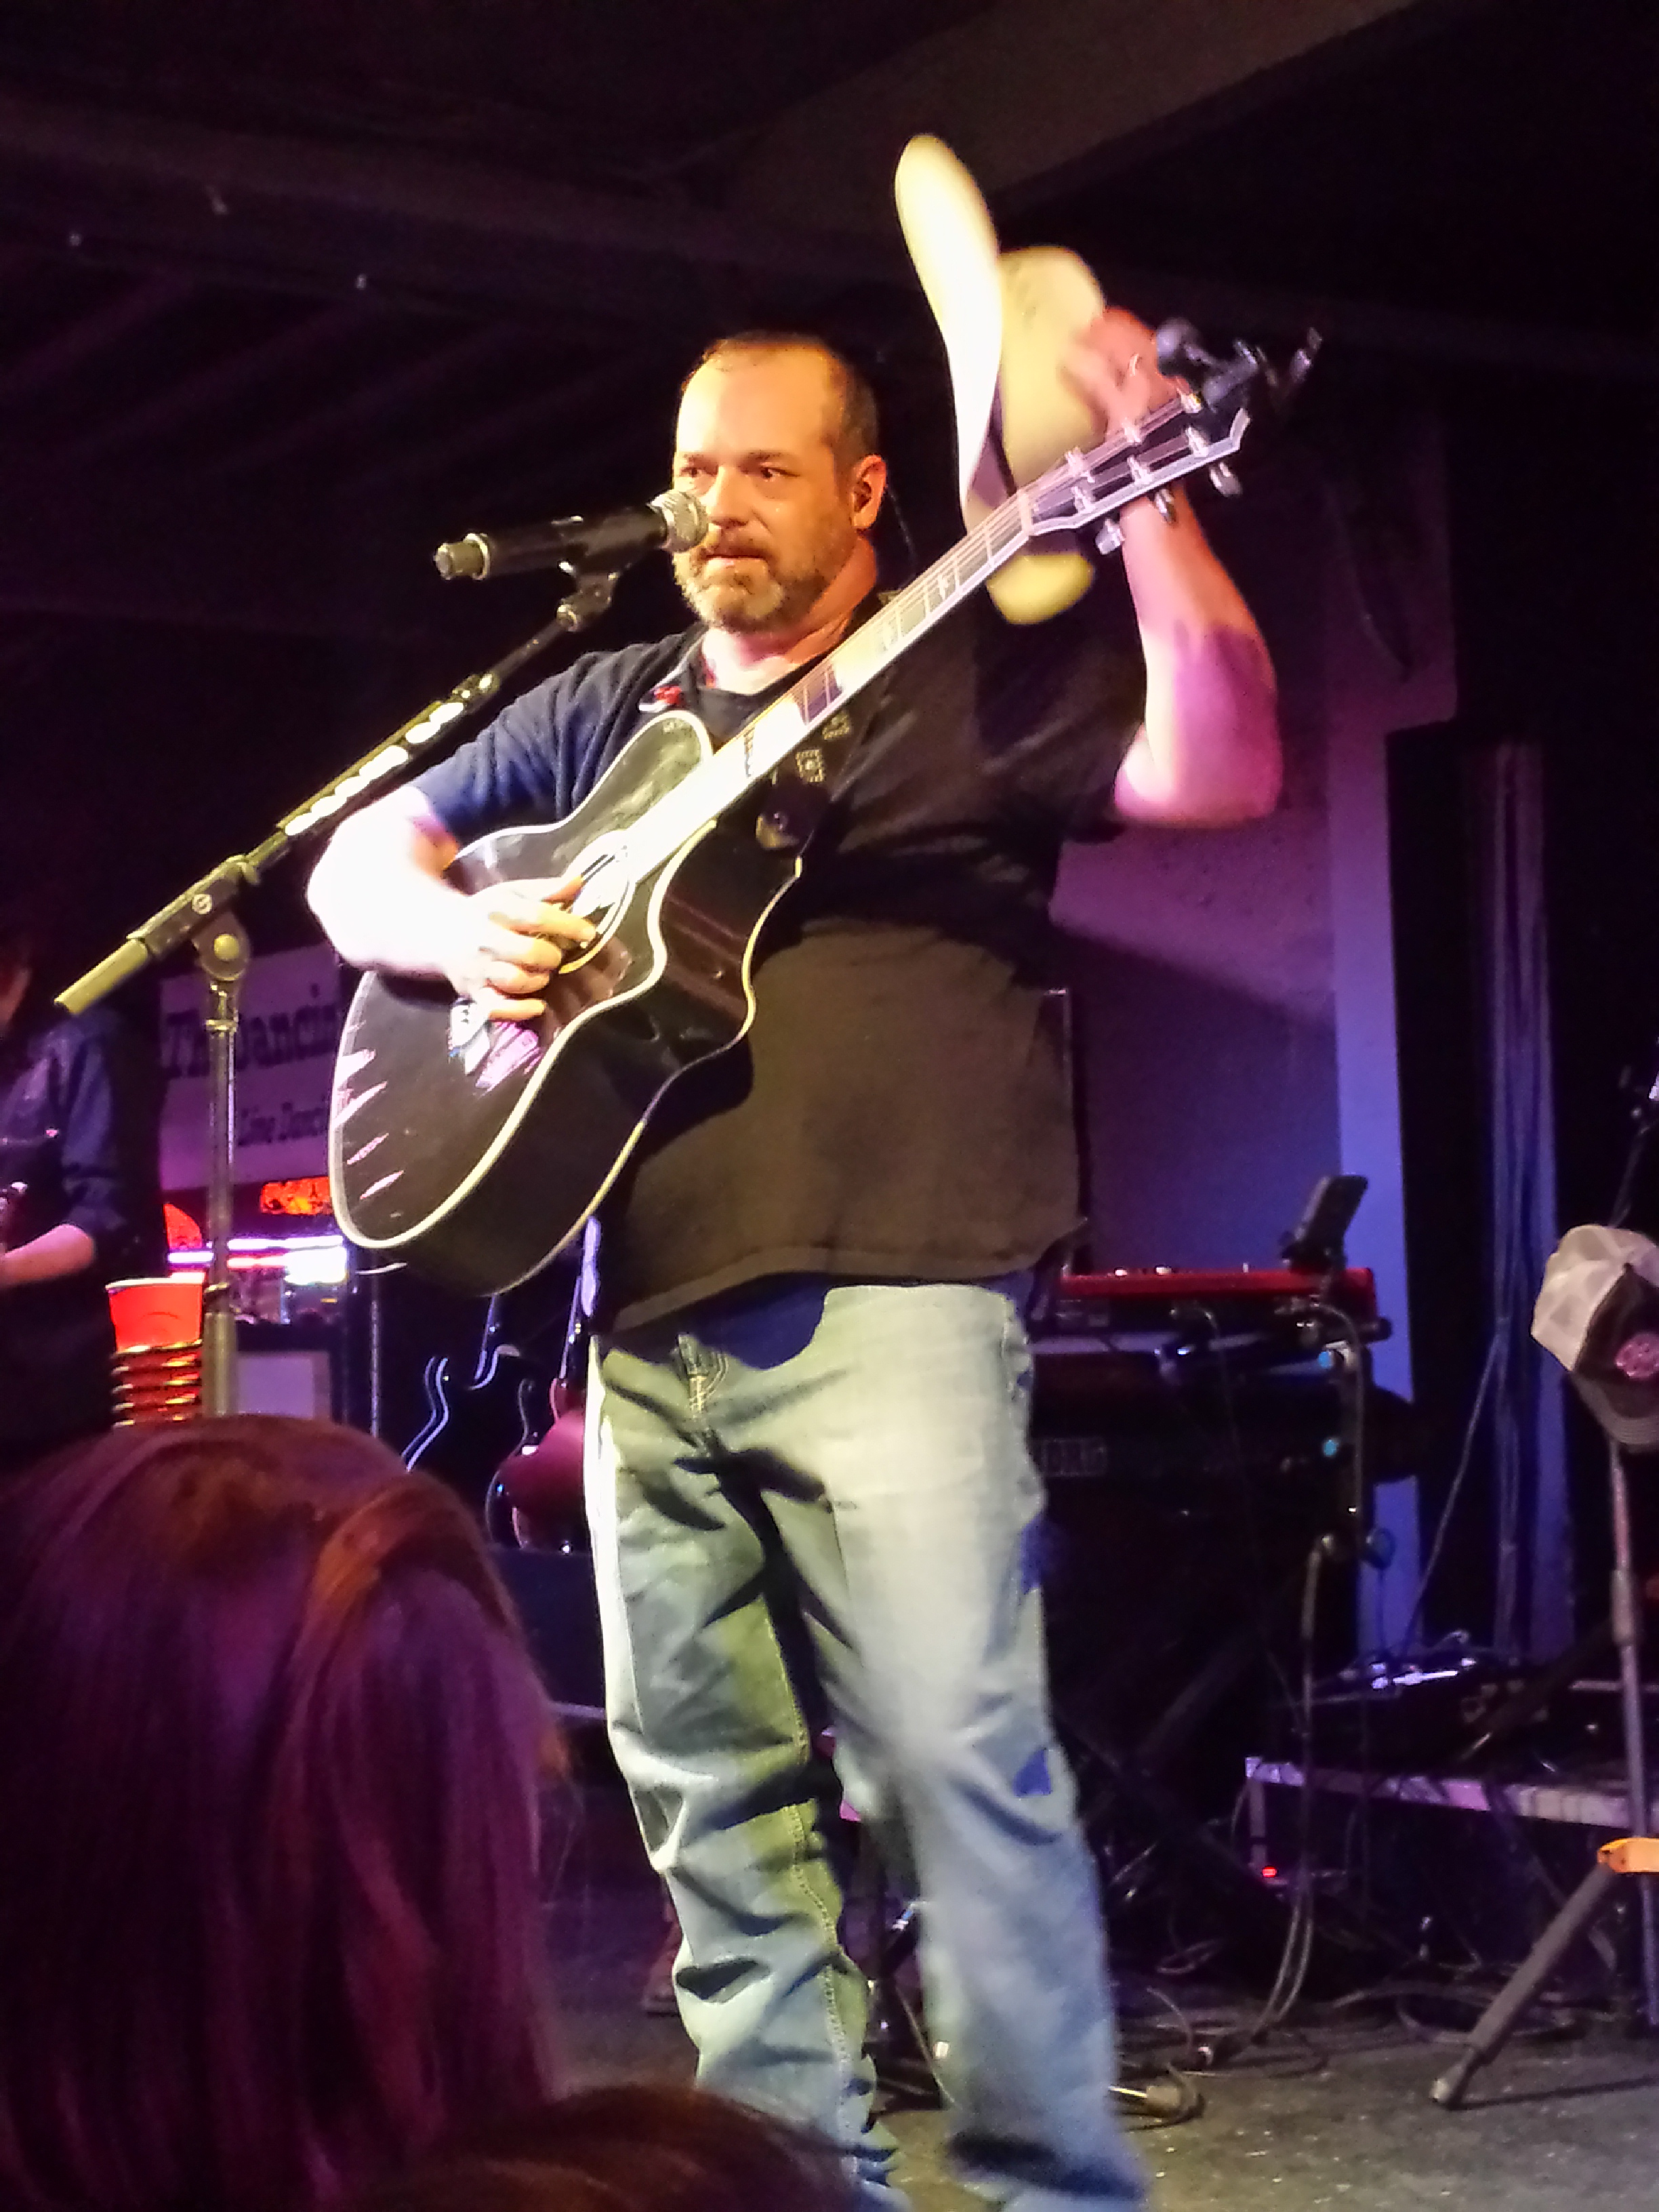 Concert Review Chris Cagle Gets Back In The Saddle With